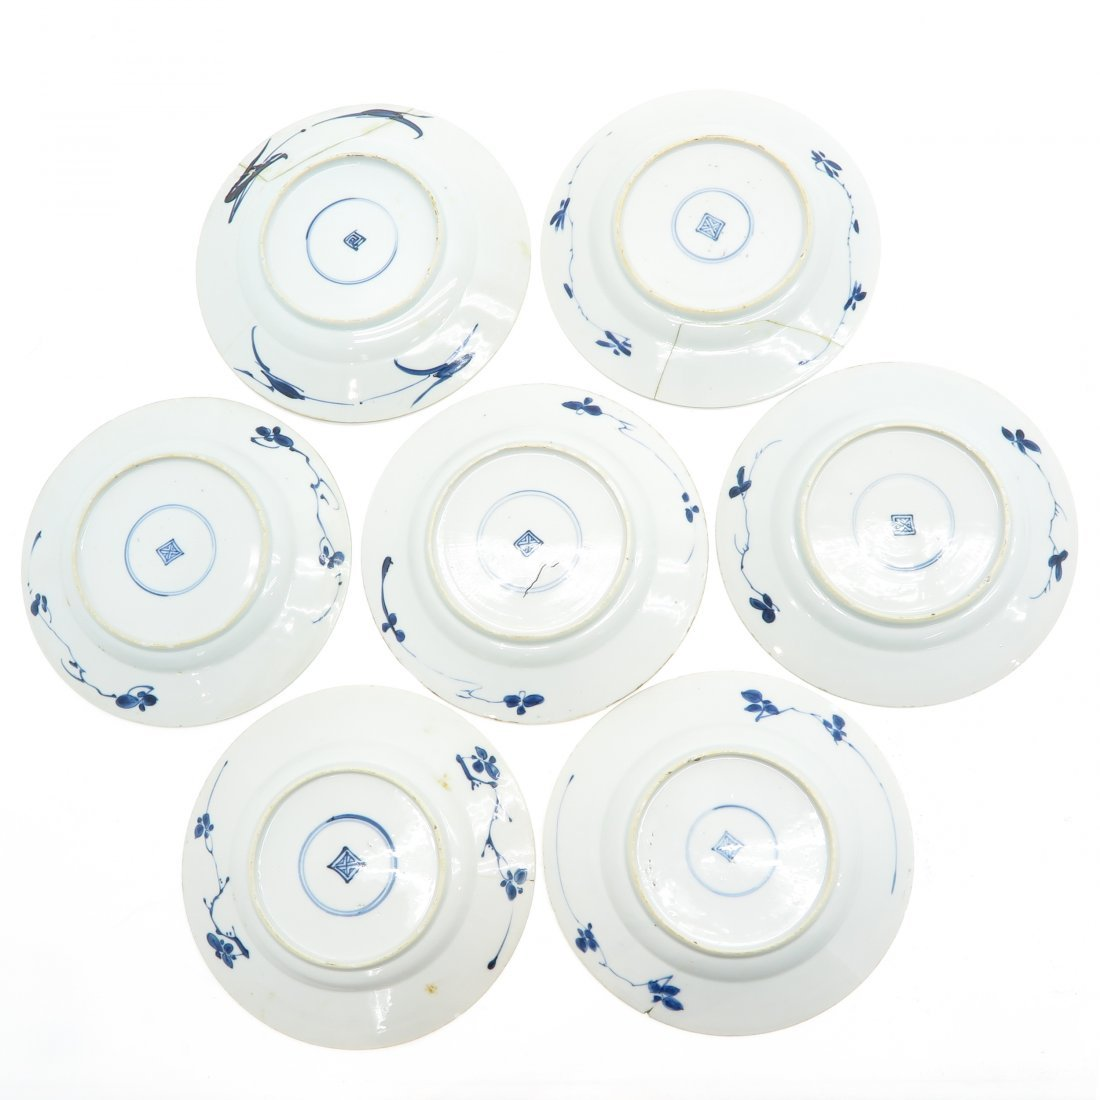 Lot of 7 Plates - 2